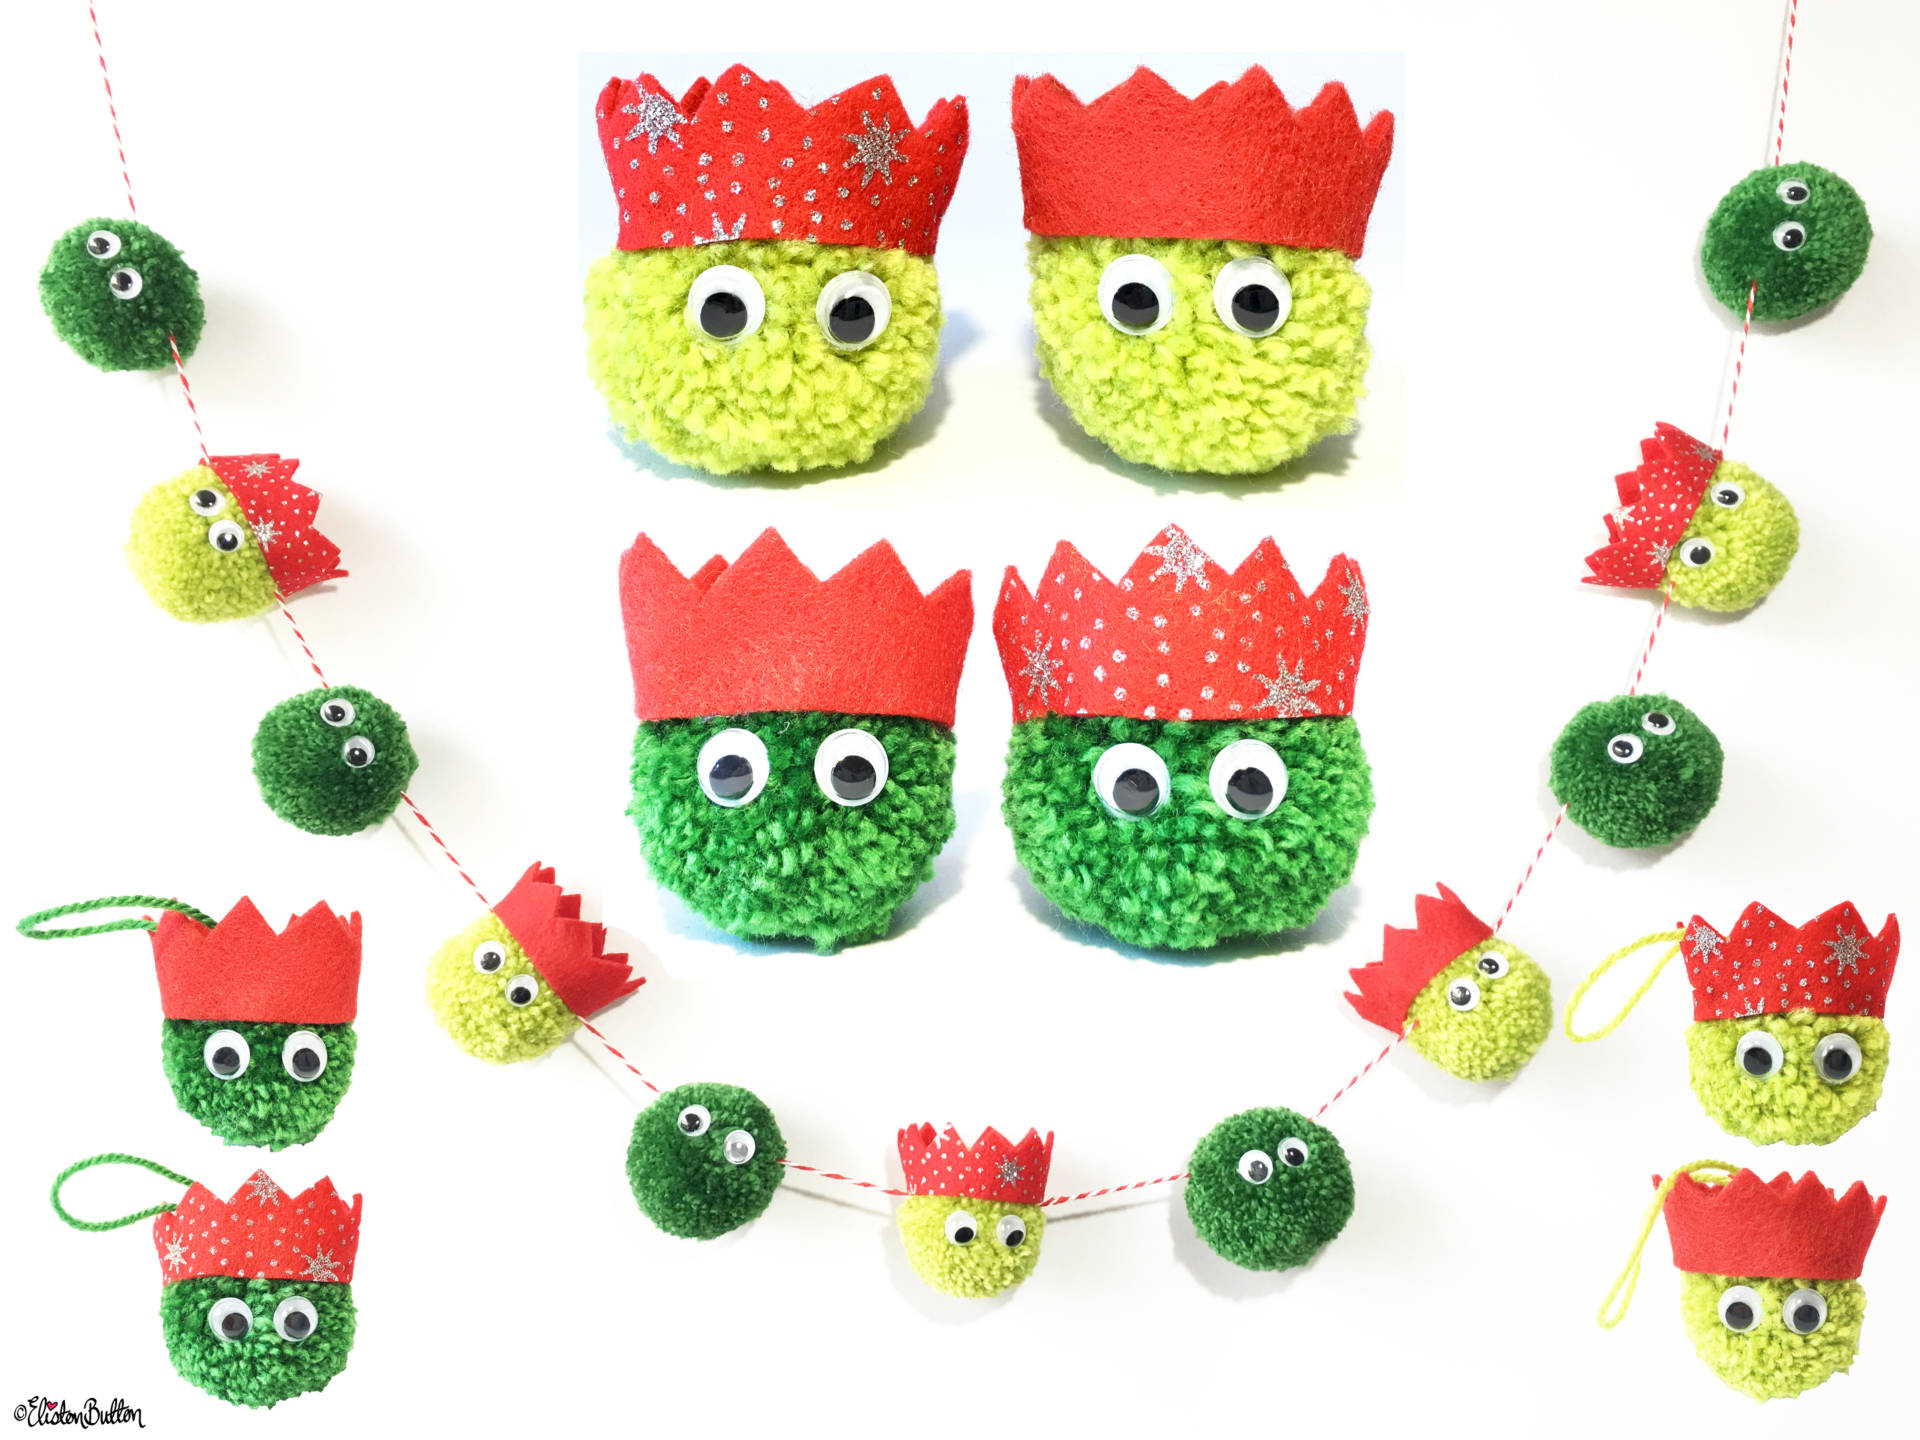 Christmas Sprout Garland and Decorations by Eliston Button - Christmas Gift Guide, Last Postage Dates and a Present for You! at www.elistonbutton.com - Eliston Button - That Crafty Kid – Art, Design, Craft & Adventure.